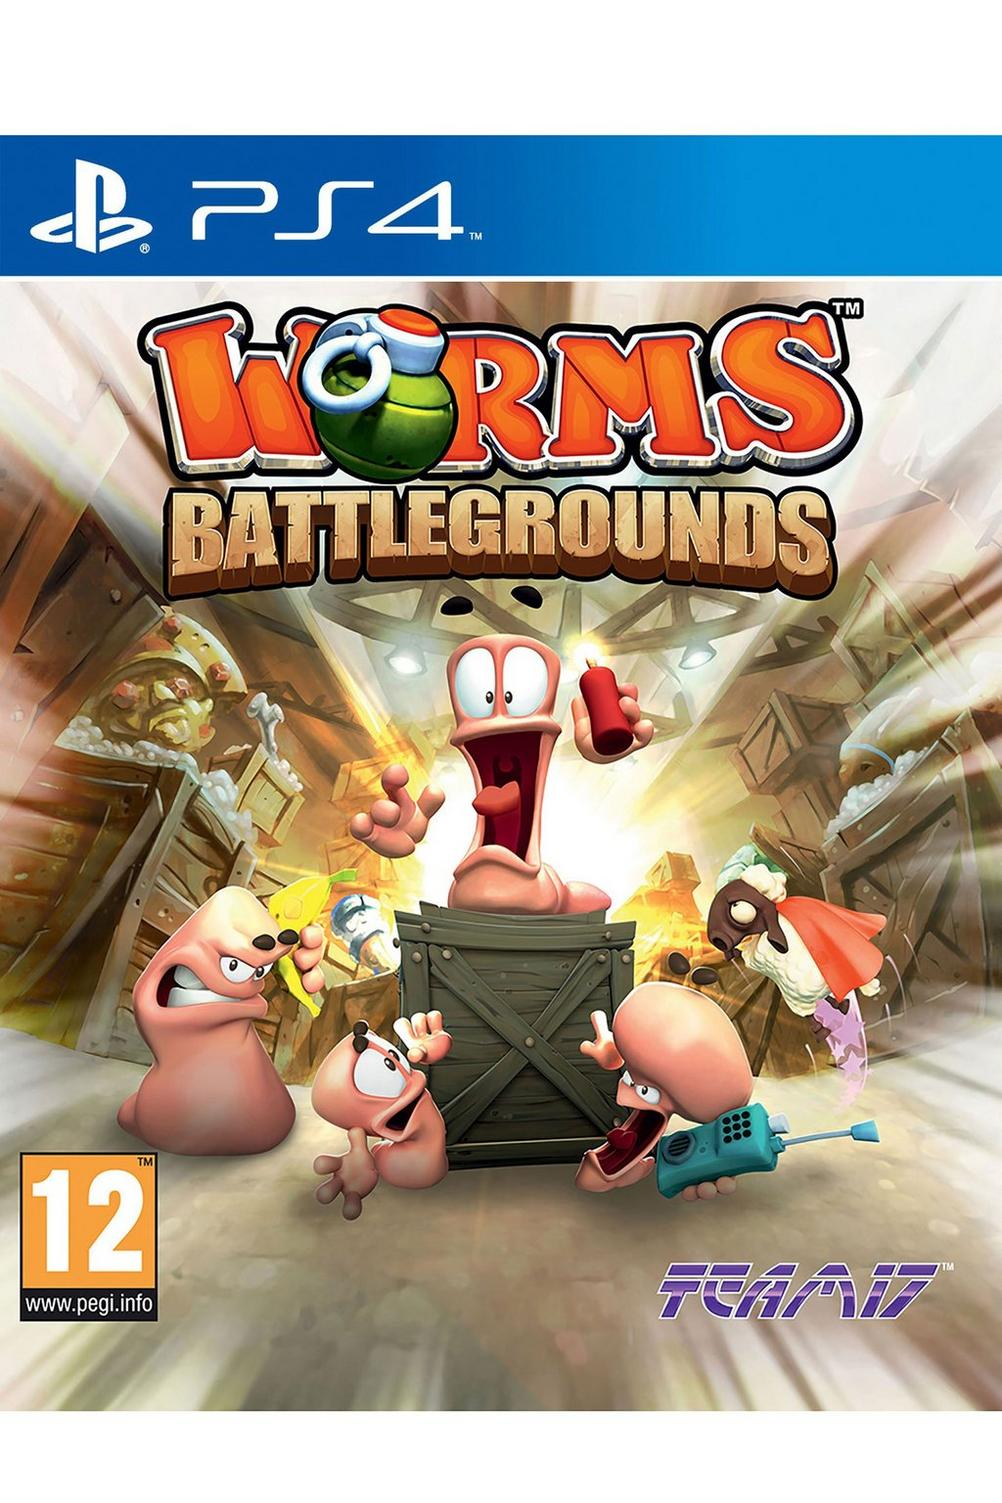 Ps4 Worms Battlegrounds Studio Ps4yooka Laylee Reg 2 Image For From